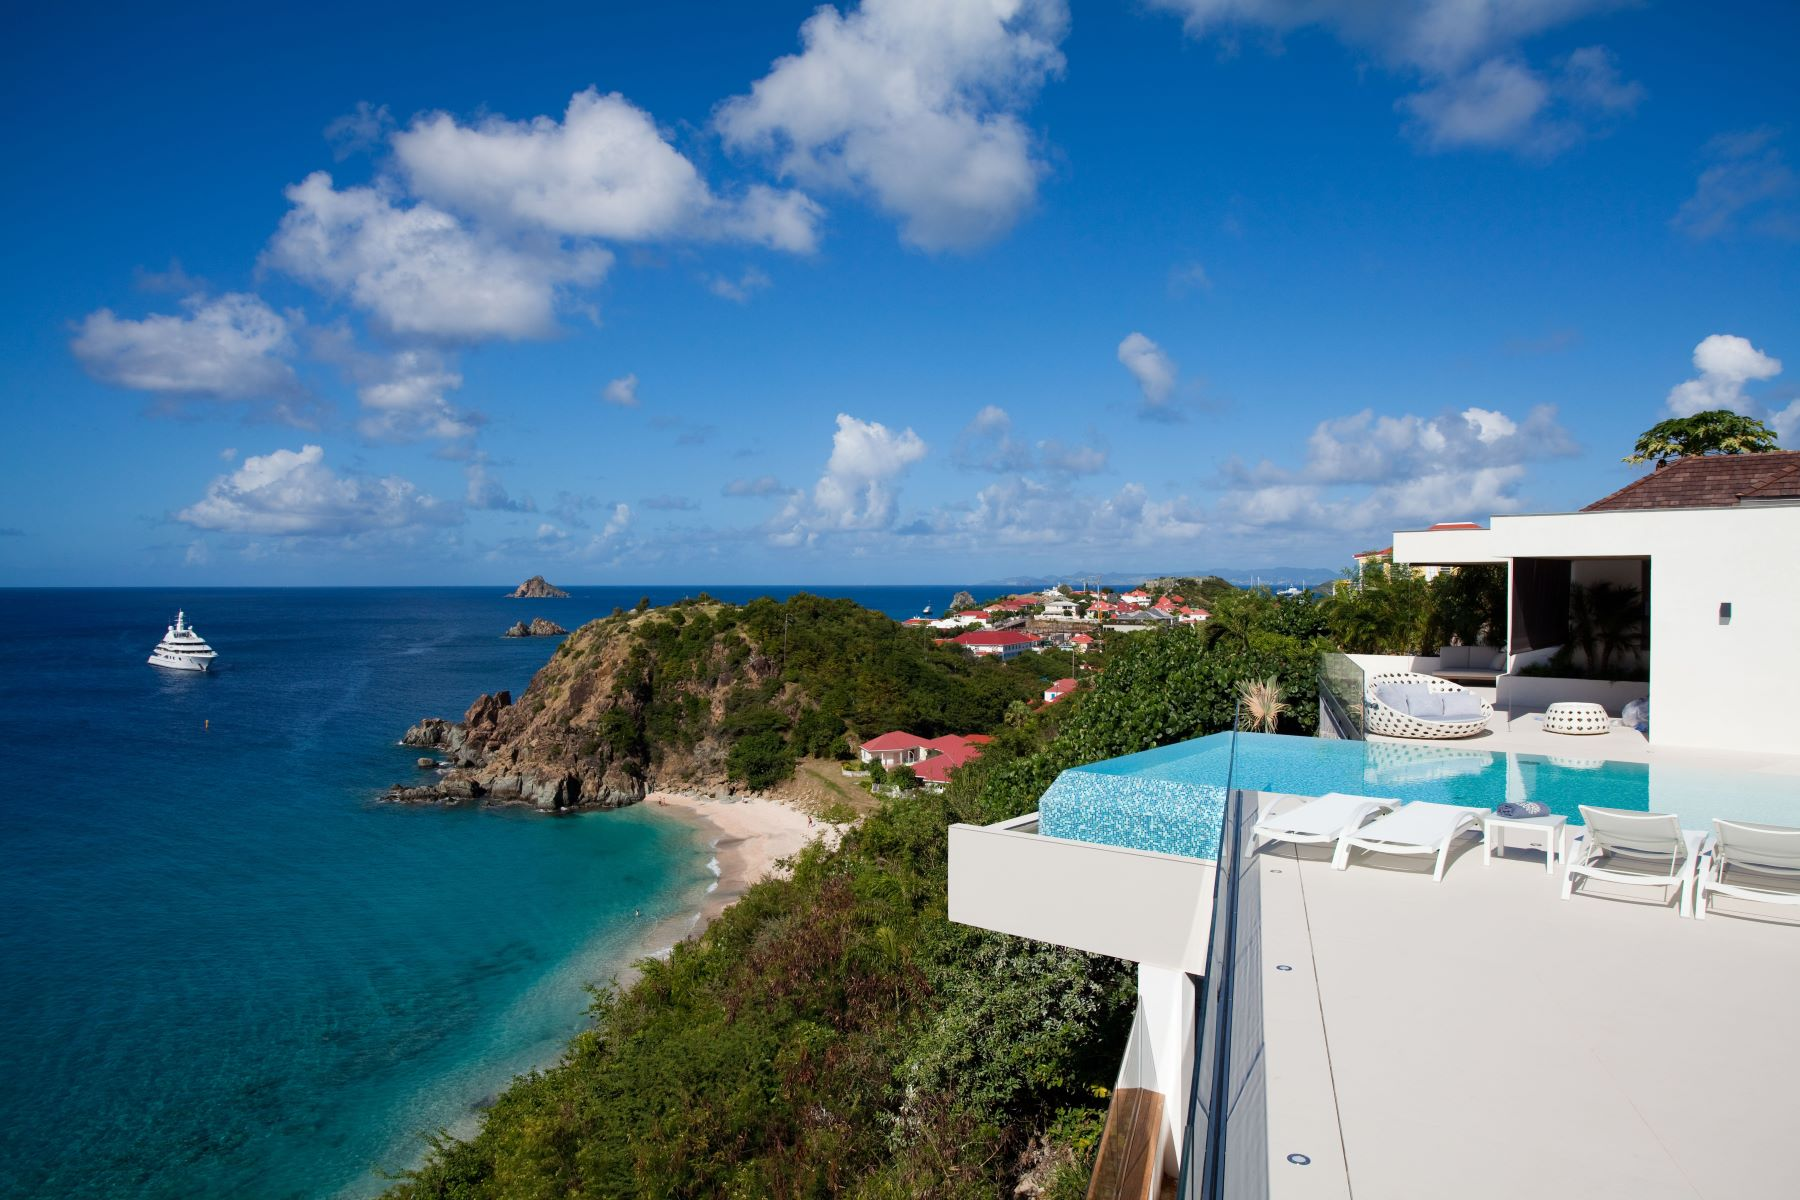 Property for Sale at Villa Vitti Lurin Lurin, Cities In St. Barthelemy 97133 St. Barthelemy